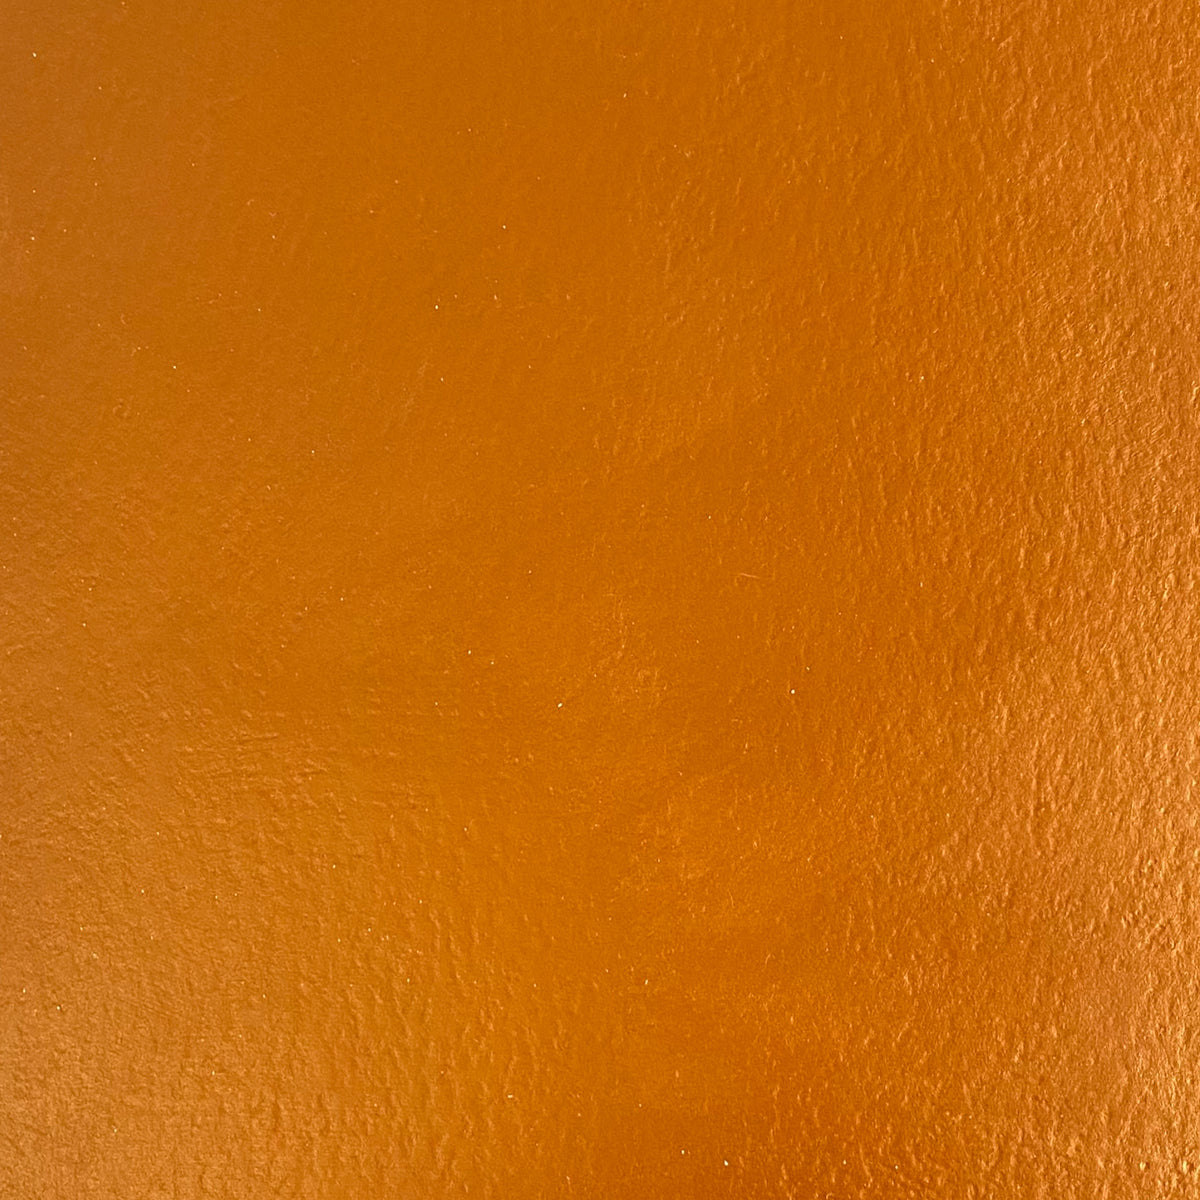 JH Wall Paints | Mineral Metallic Stain 1003-Mineral Wall Stain-JH Wall Paints